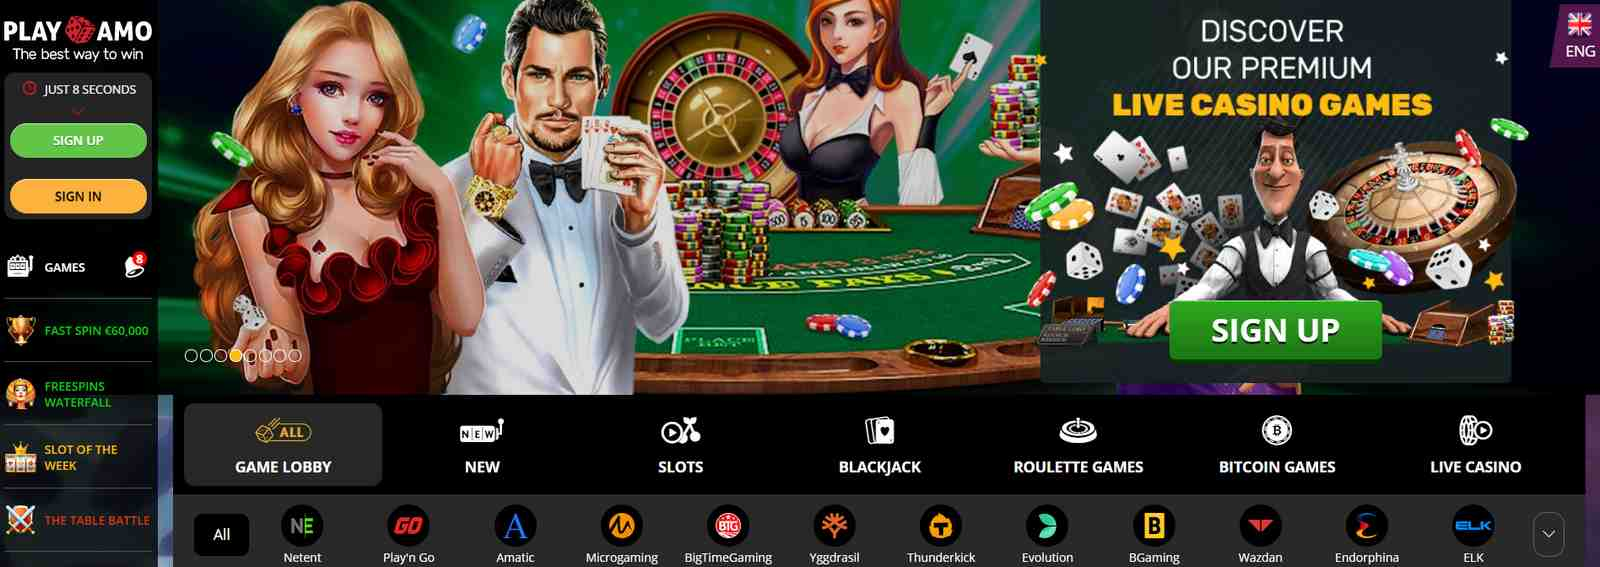 PlayAmo casino like a part of online gambling in Canada